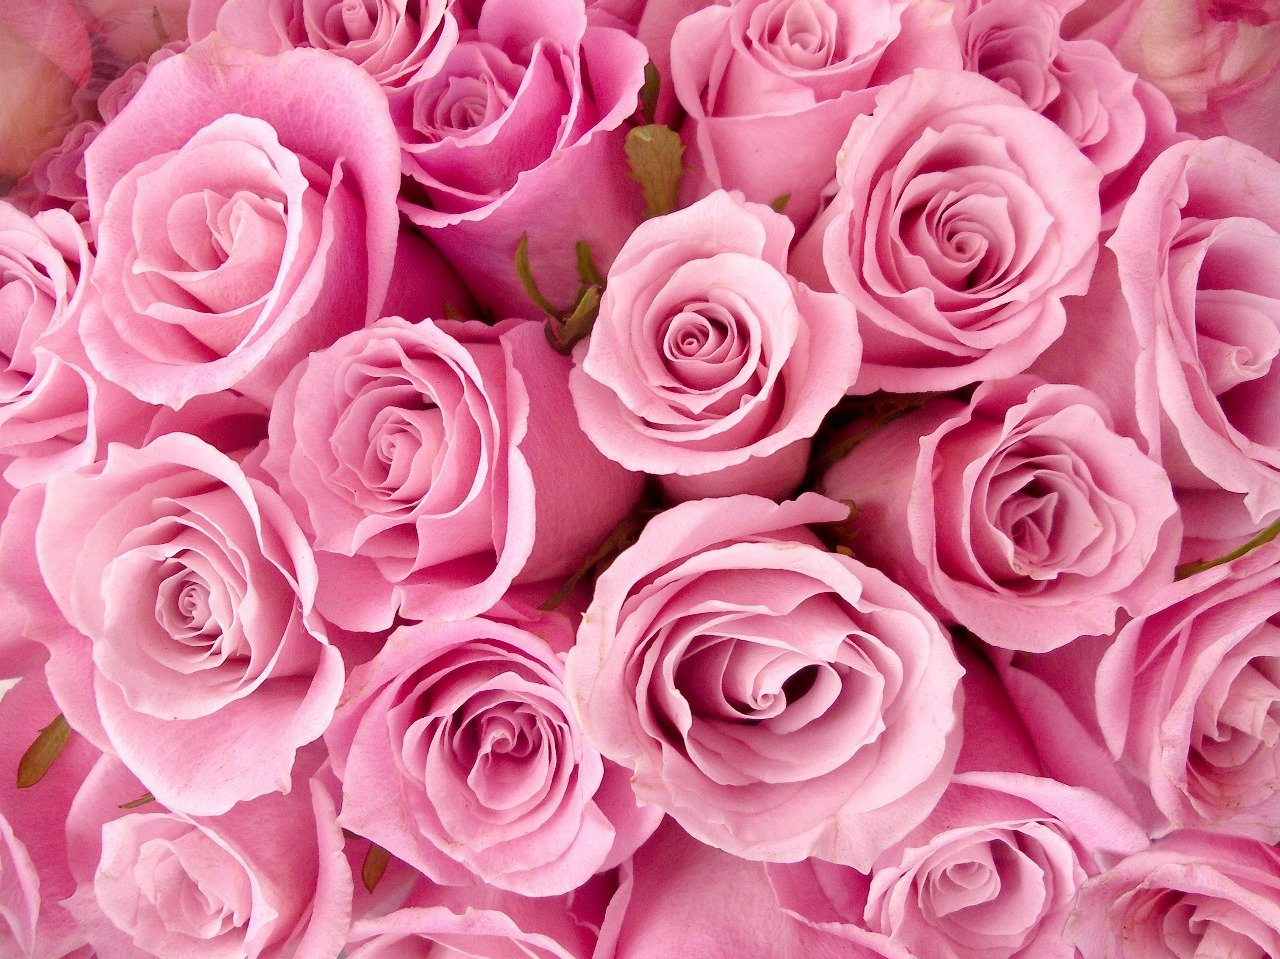 Gsquare Wallpaper Rose Flower Hd Wallpaper Pink 60x48 Inches Amazon In